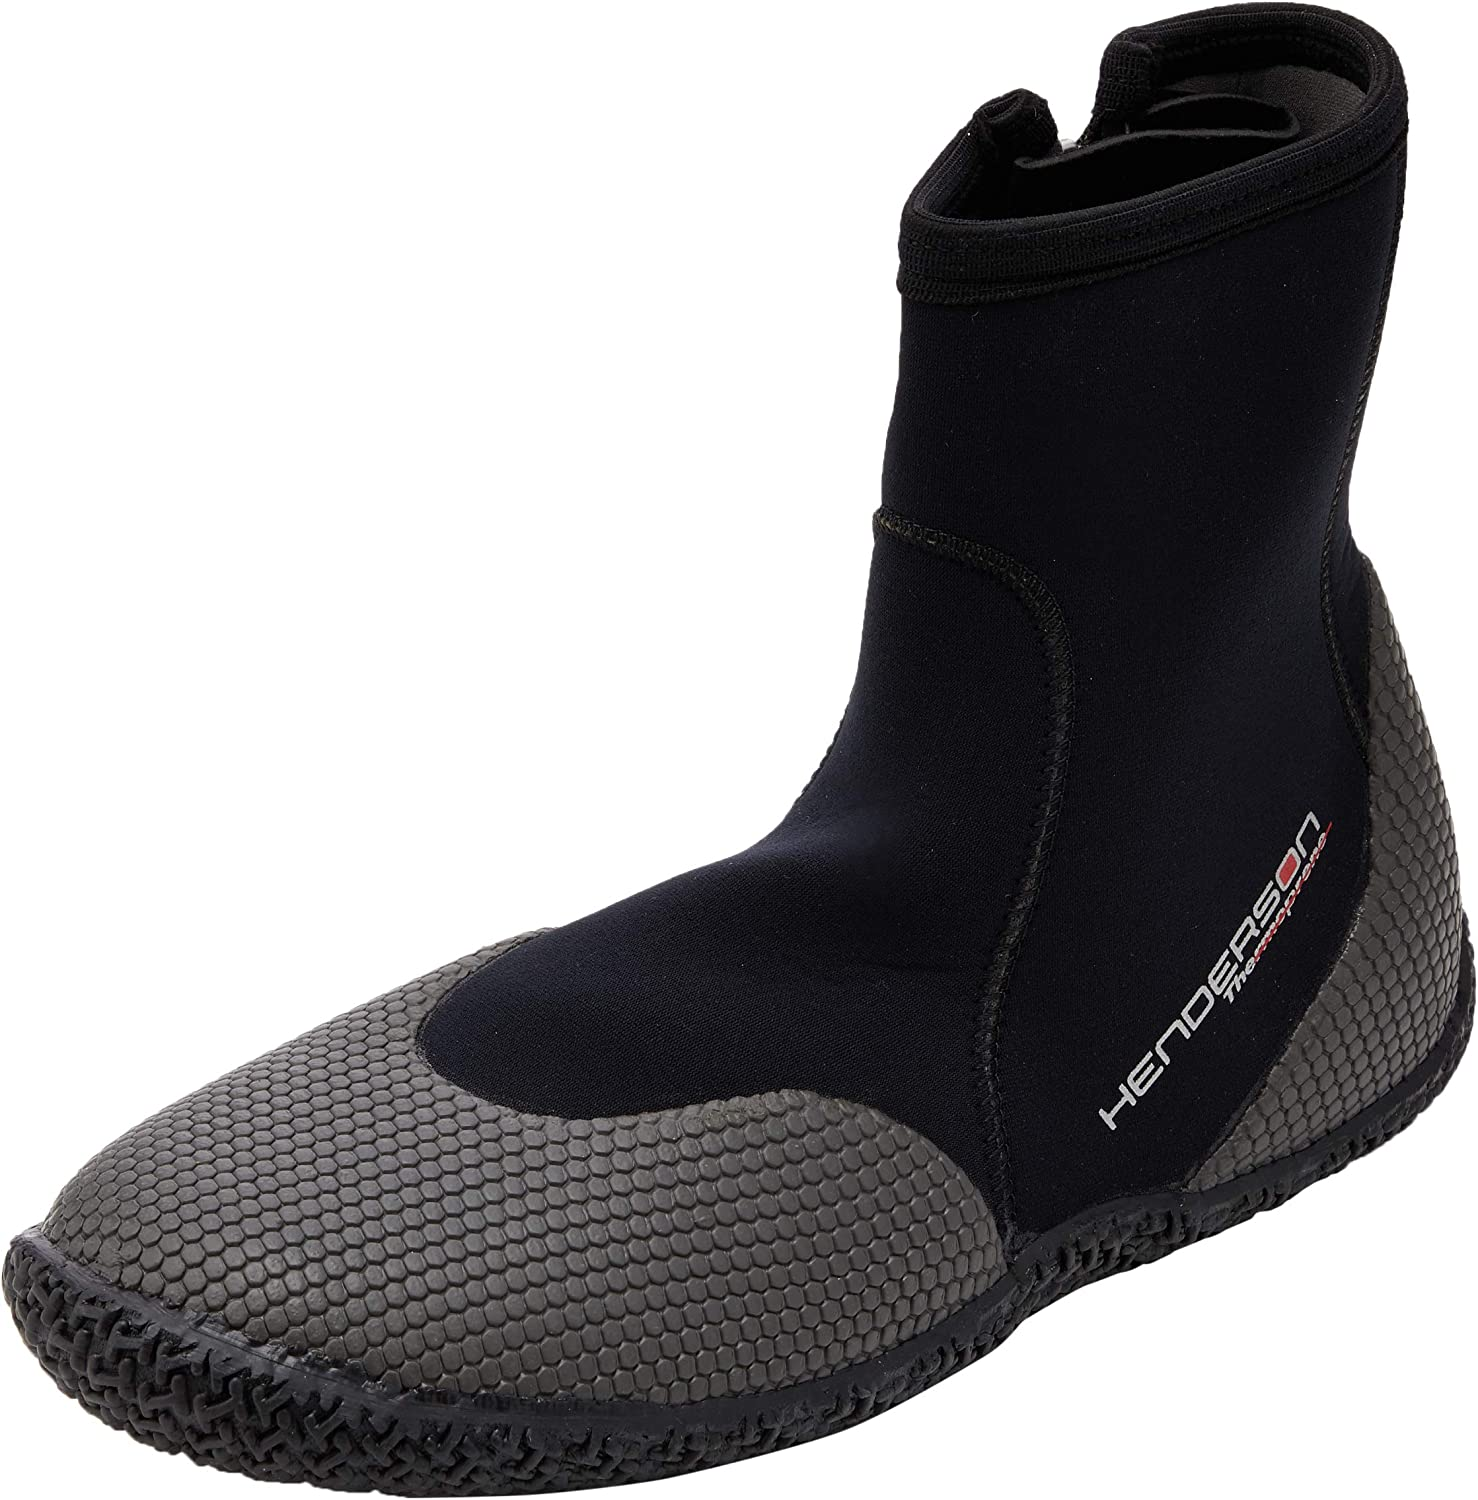 Henderson 5mm Thermoprene Boots Outstanding Top High San Francisco Mall